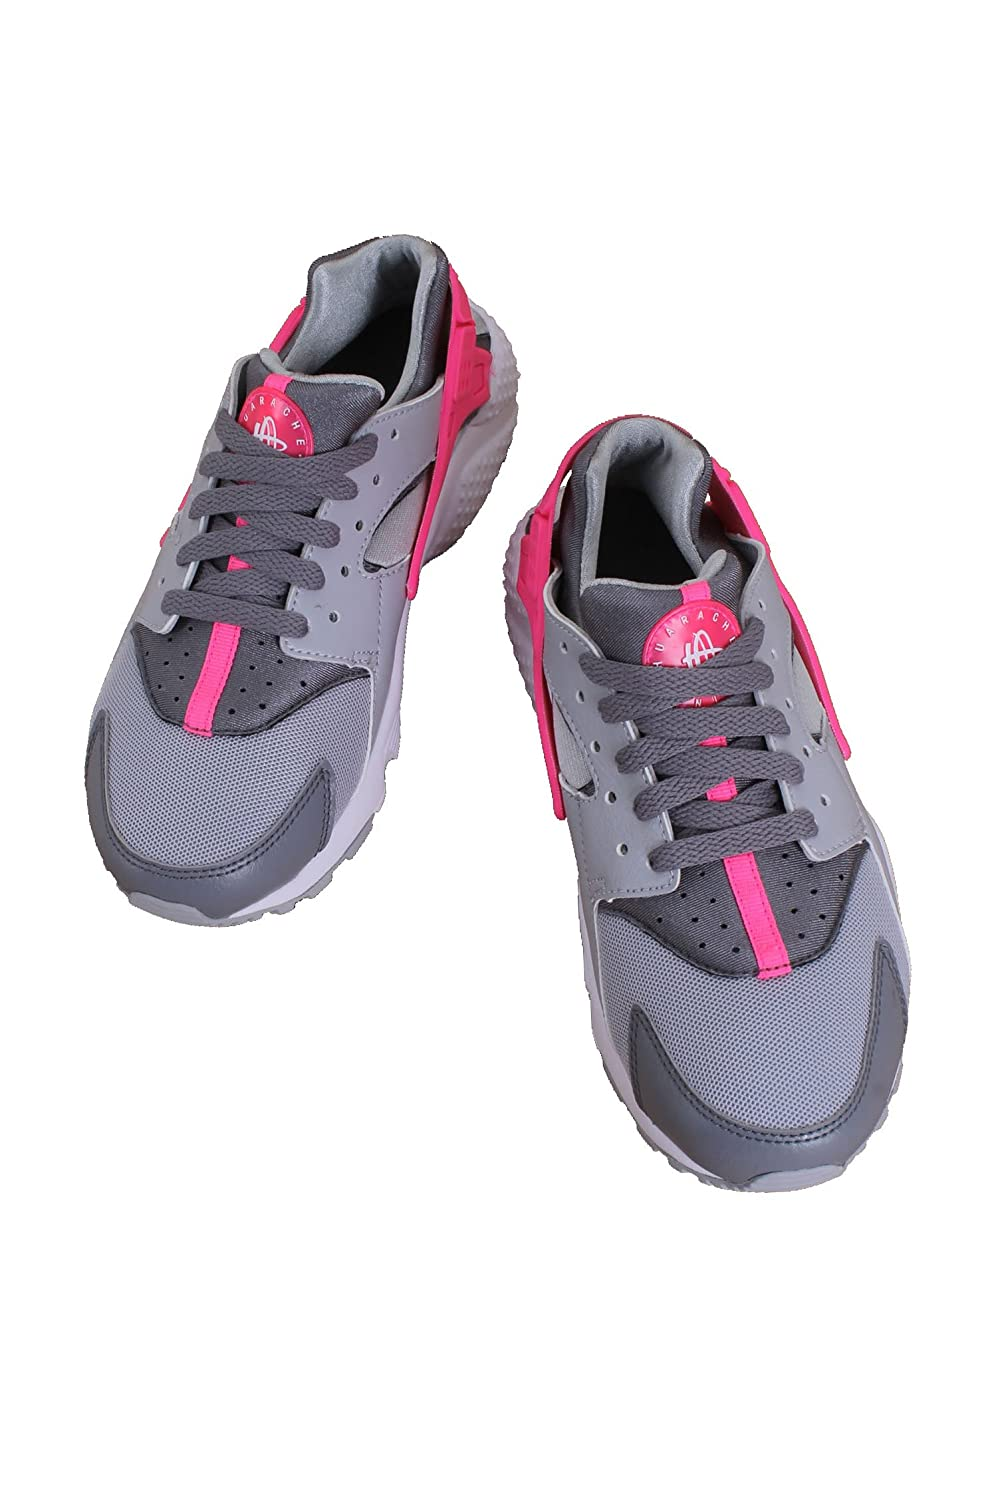 654280-006 KIDS GRADE SCHOOL HUARACHE RUN NIKE WOLF GREY//HYPER PINK GS